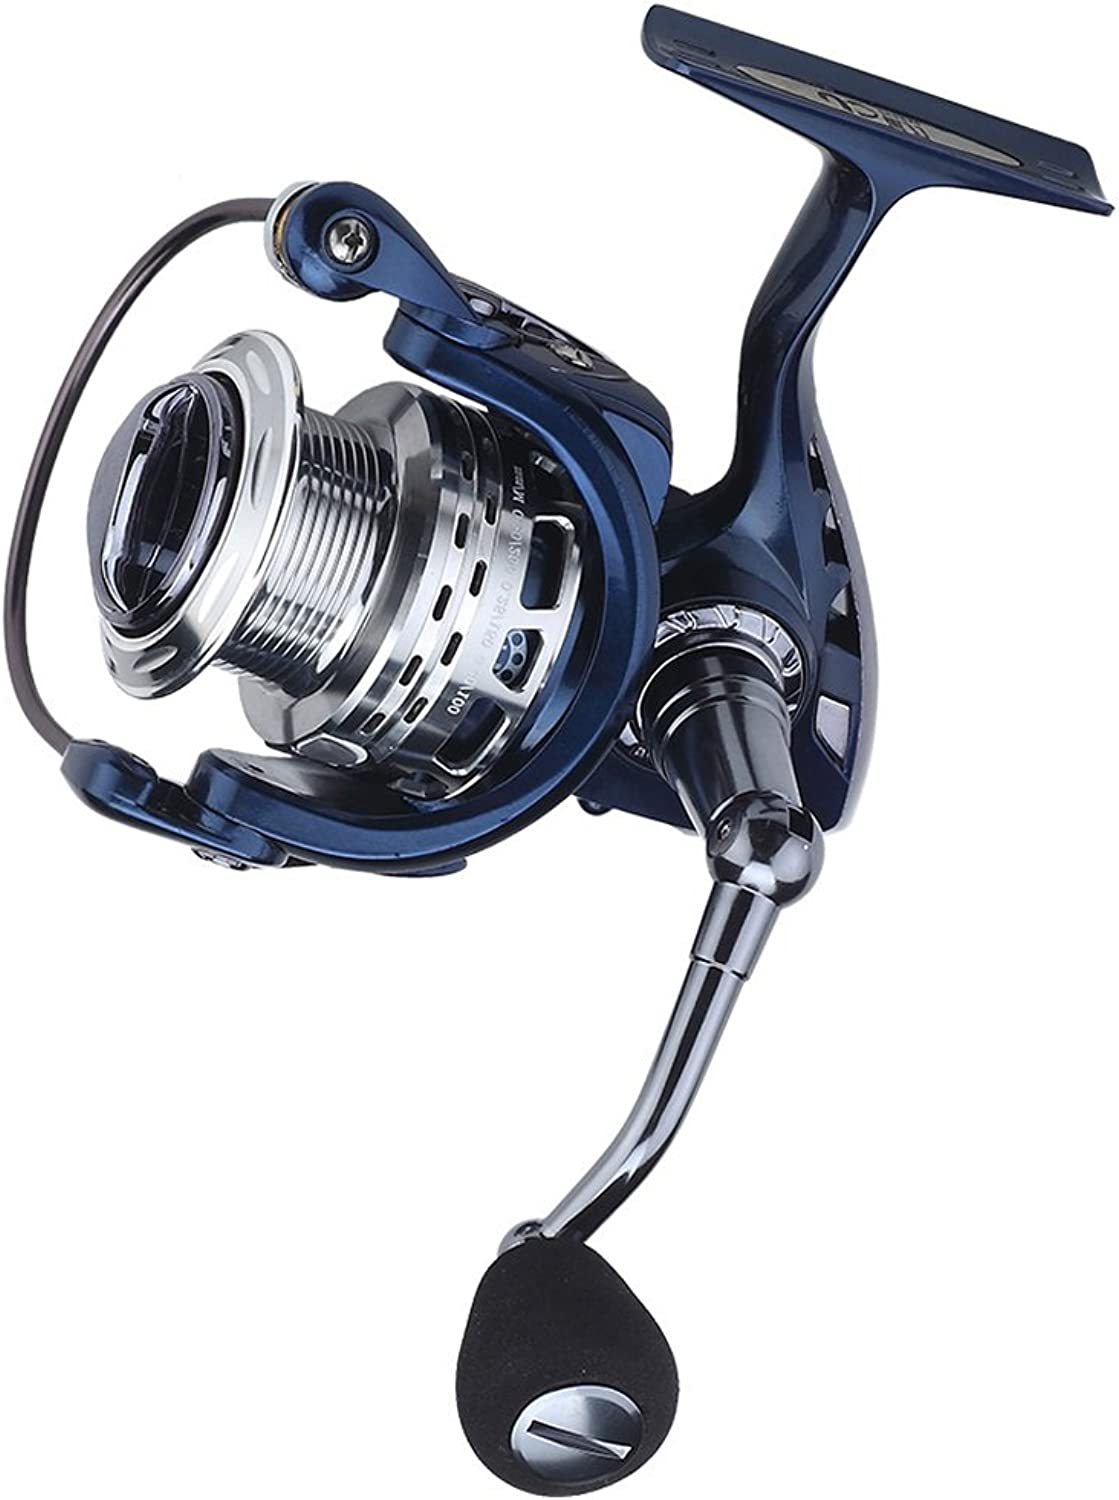 FyshFlyer Briny Highprecision Premium Spinning Reel; Stainless Steel 9+1 BB; CNC Alloy Body Handle; Soft Knob